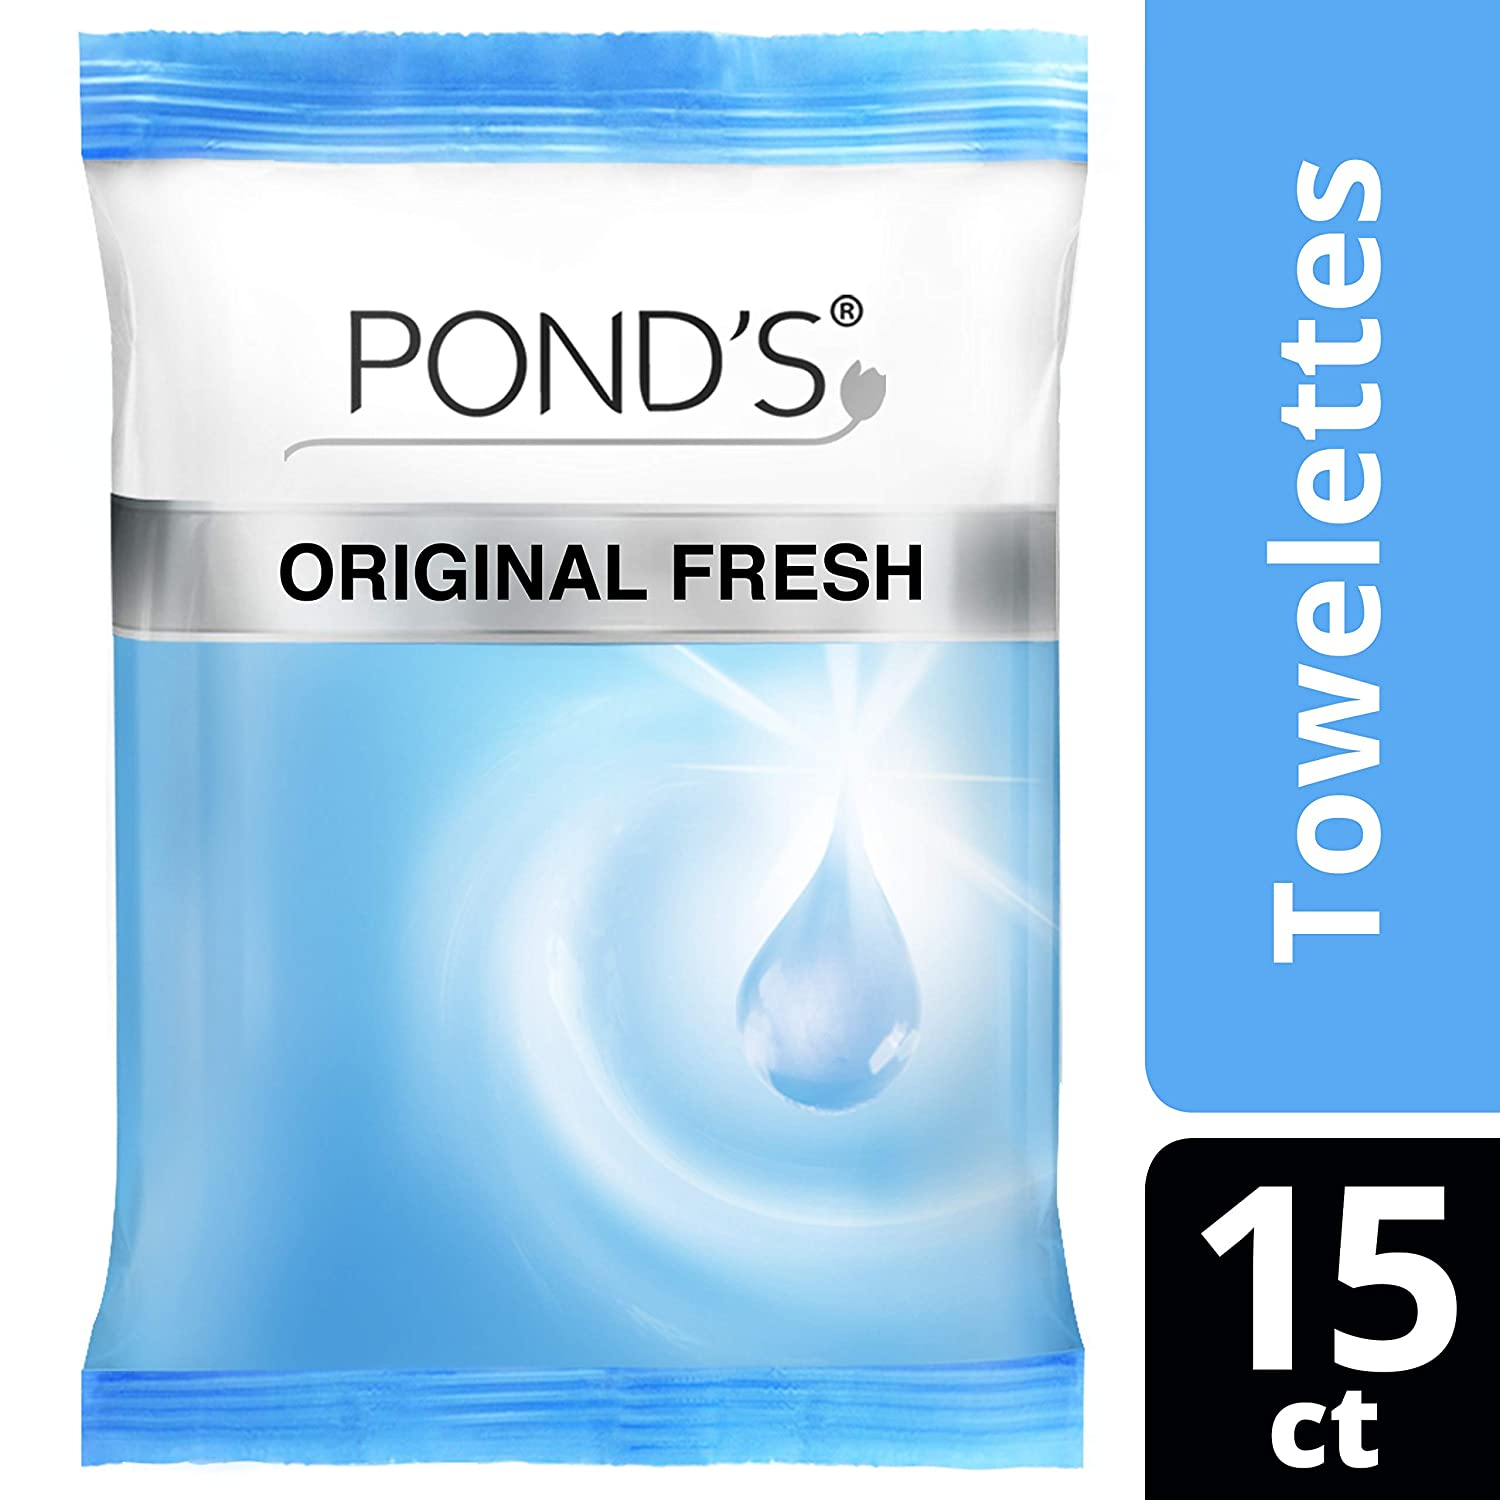 Ponds Moisture Clean Towelettes, Original Fresh 15 ct by Ponds ...